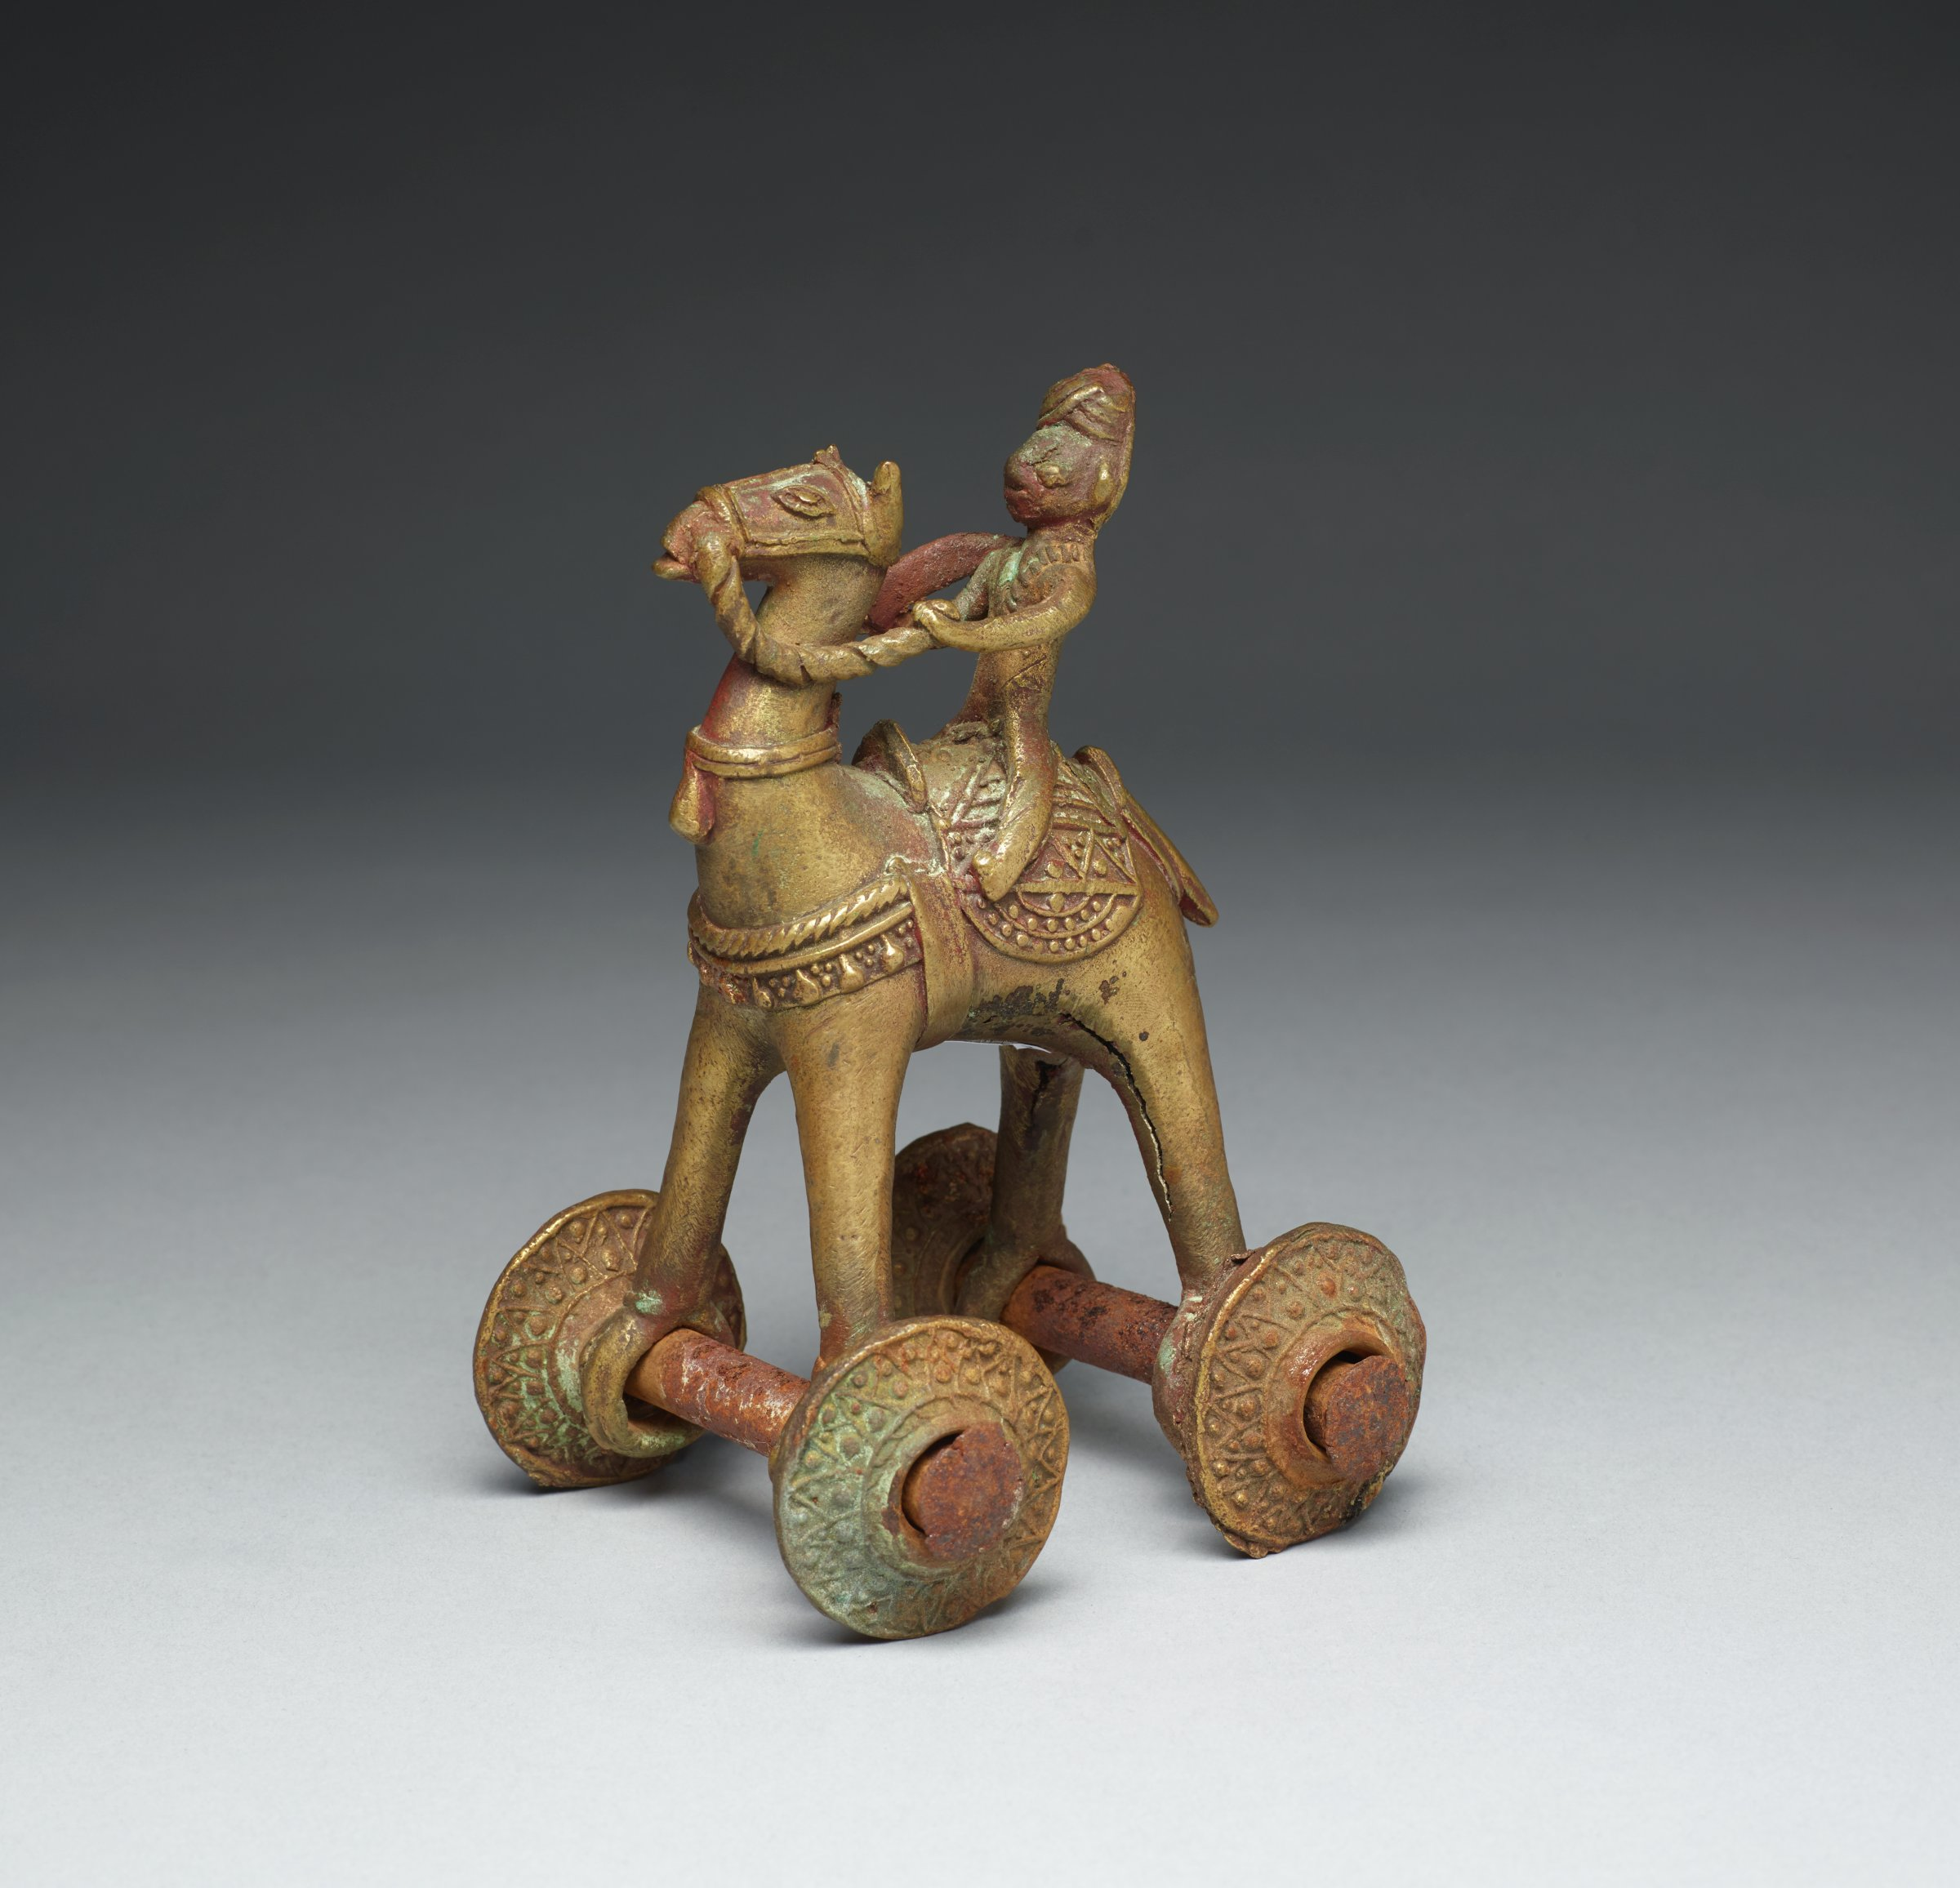 Turban-wearing equestrian rider mounted on caparisoned horse on wheels